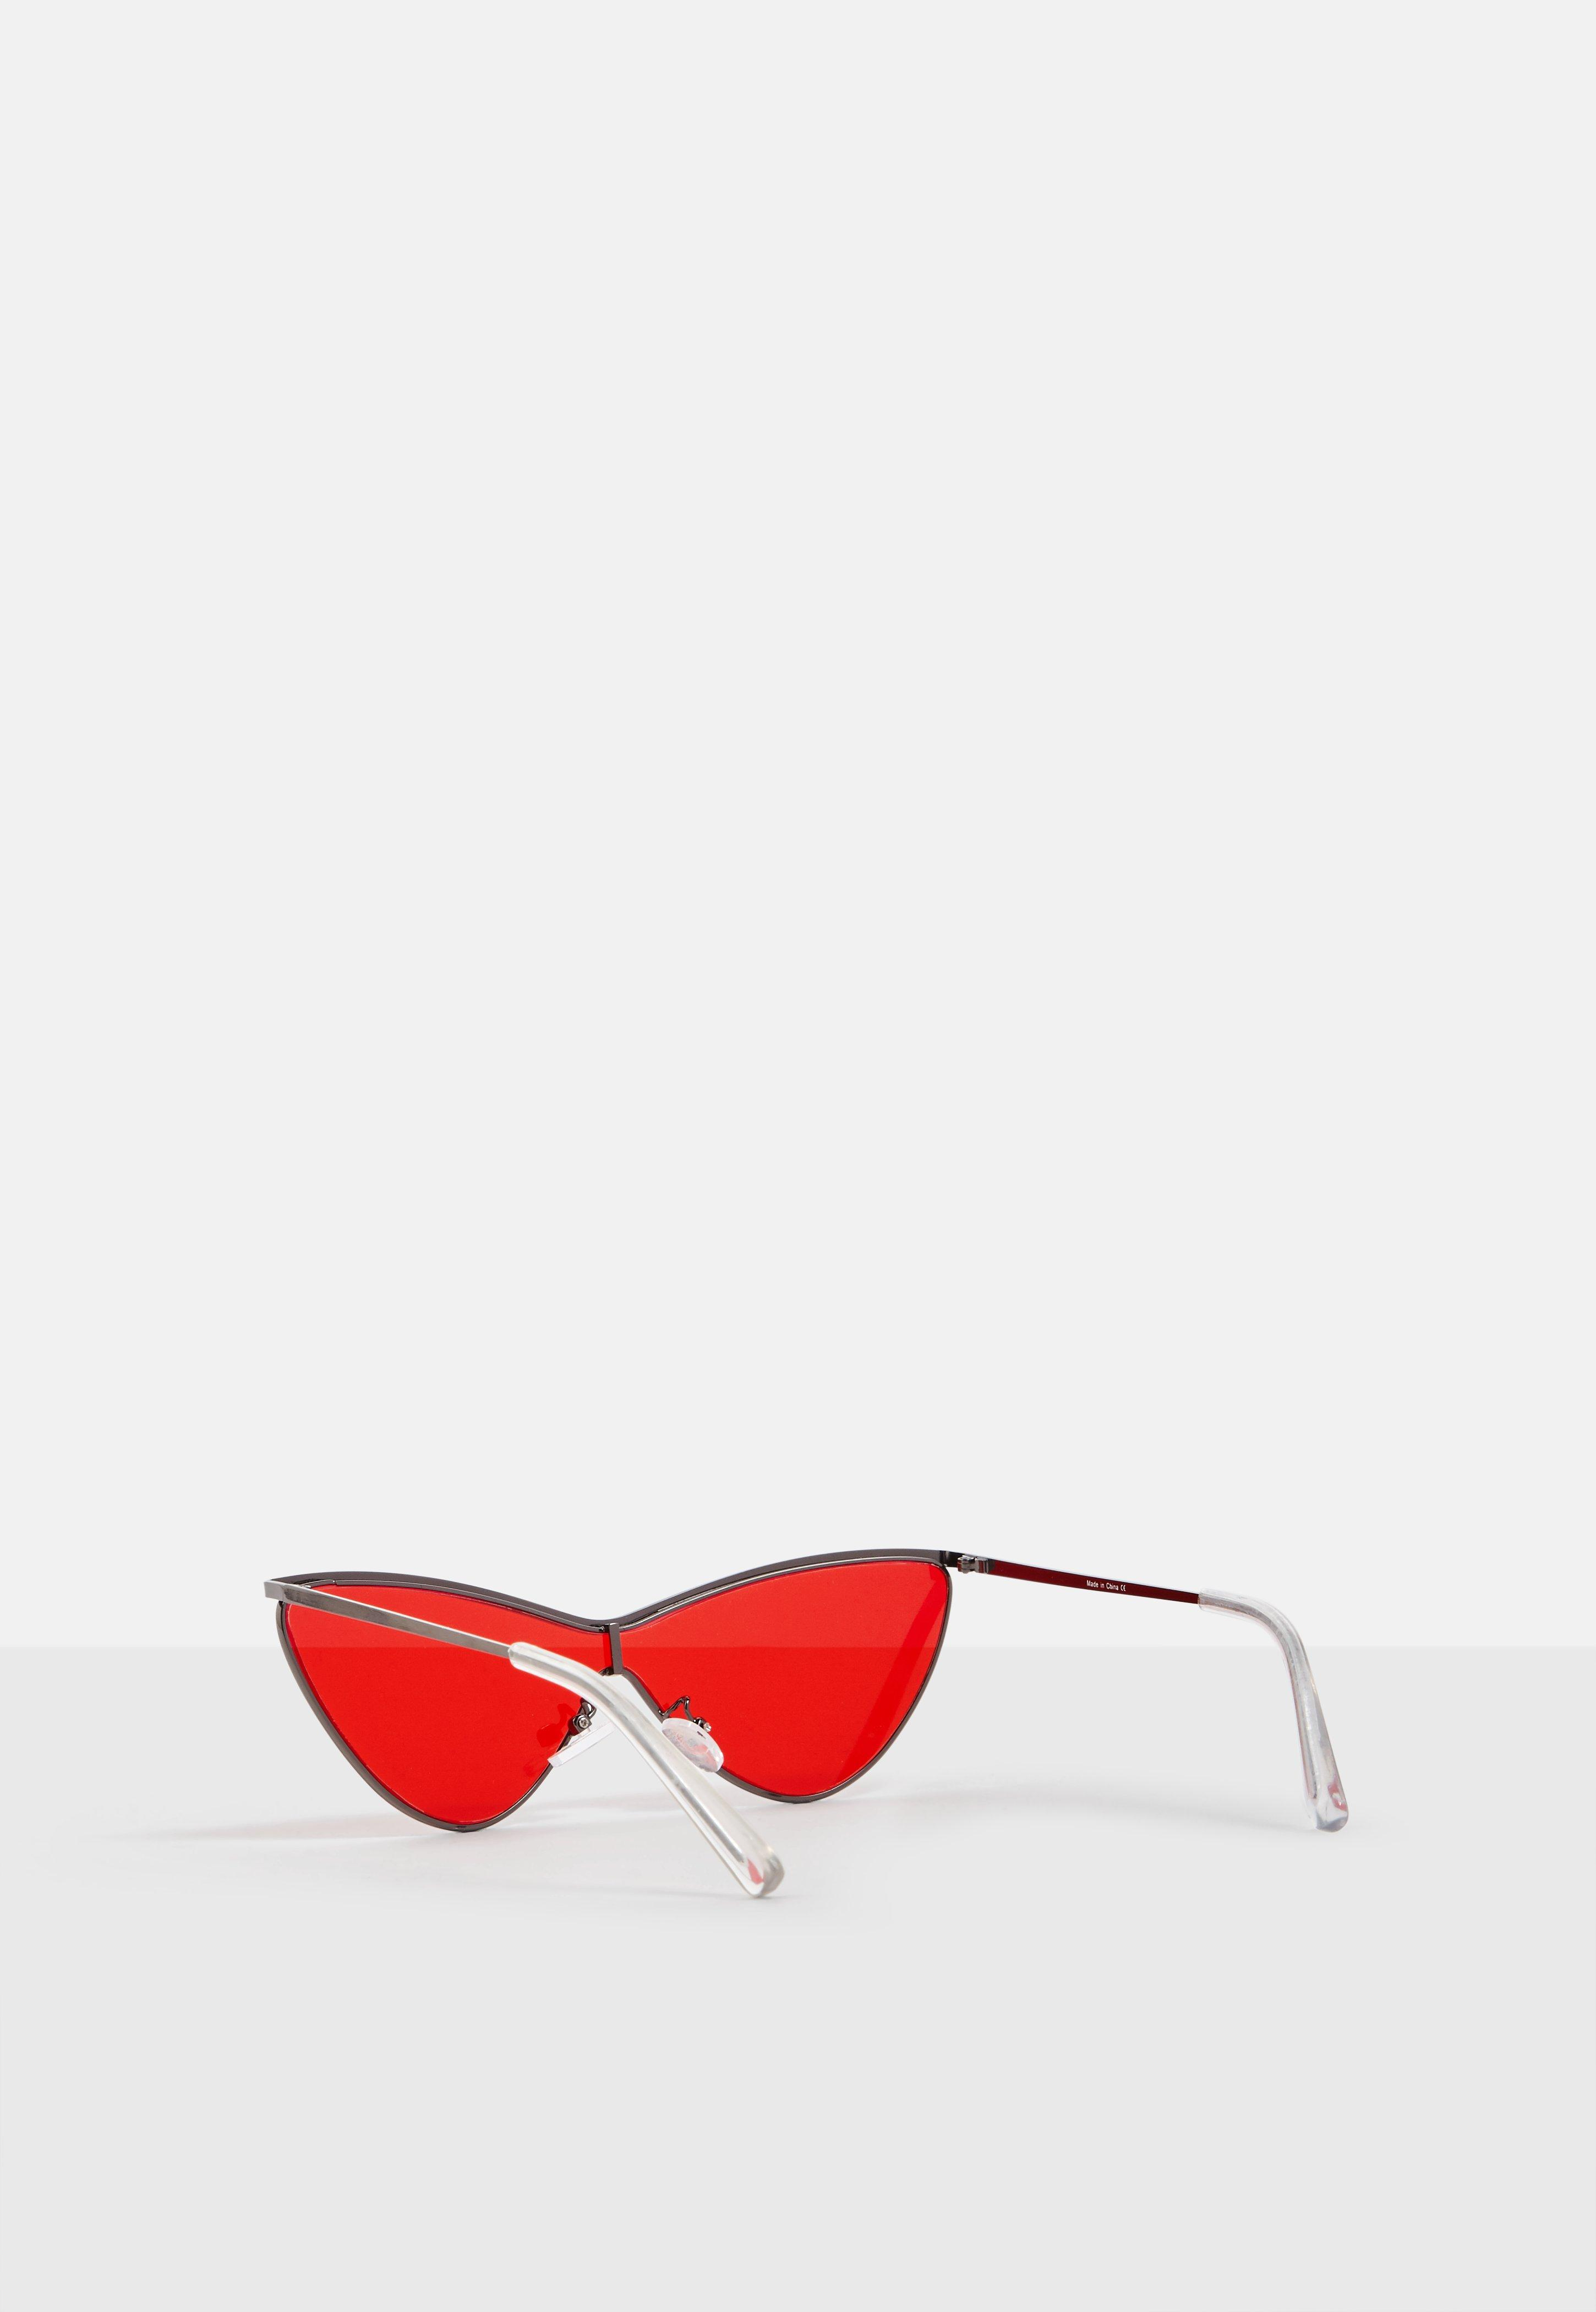 041d0fea5f Lyst - Missguided Madison Beer X Red Tinted Cat Eye Sunglasses in Red